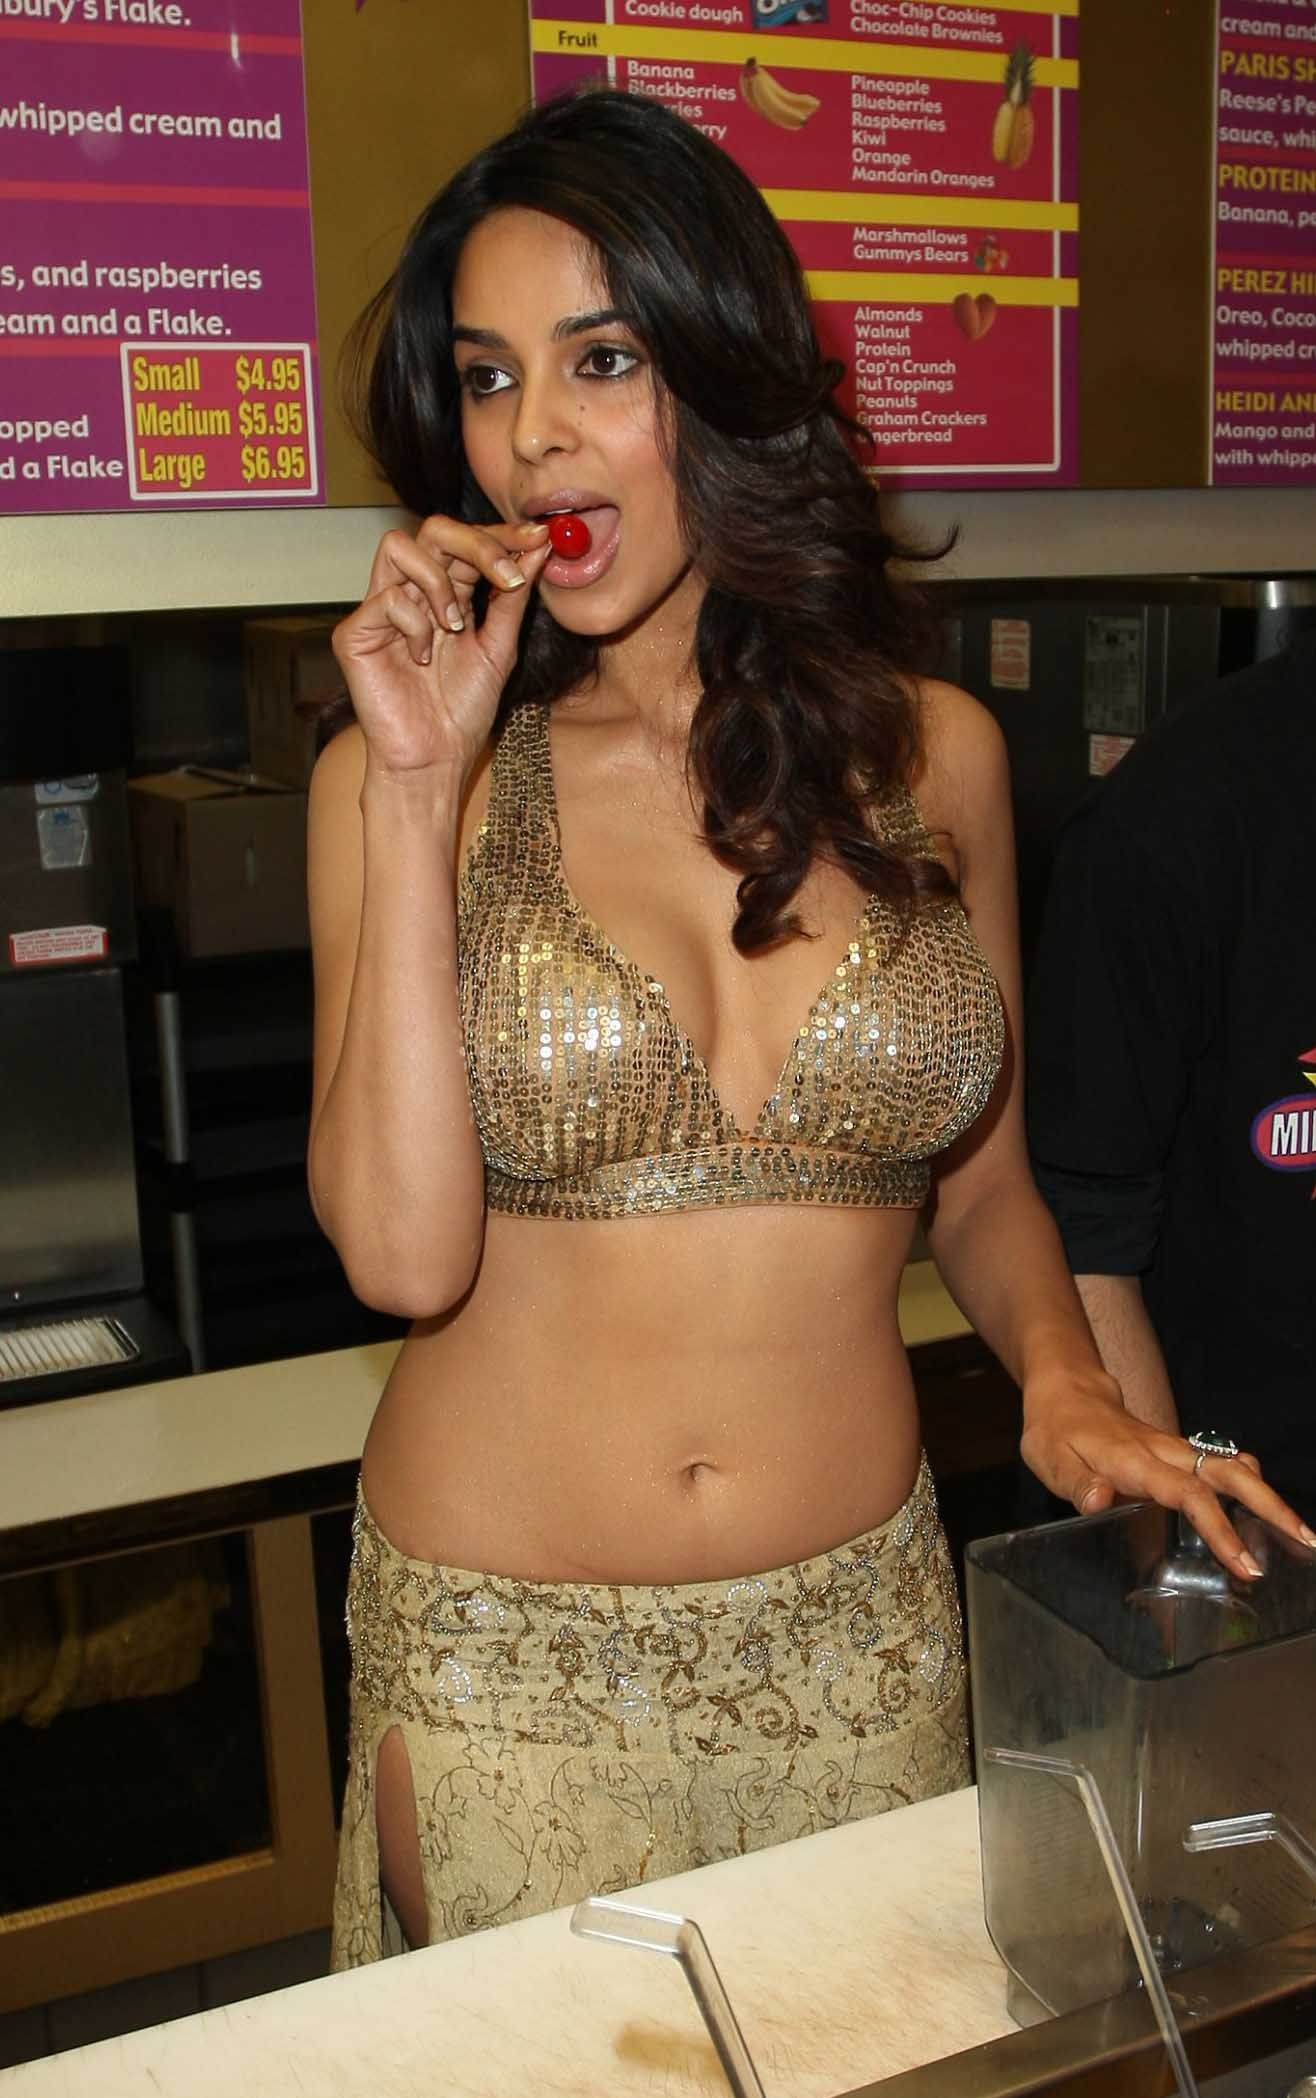 Mallika Sherawat milkshake | Indian actresses, Women, Two piece ...